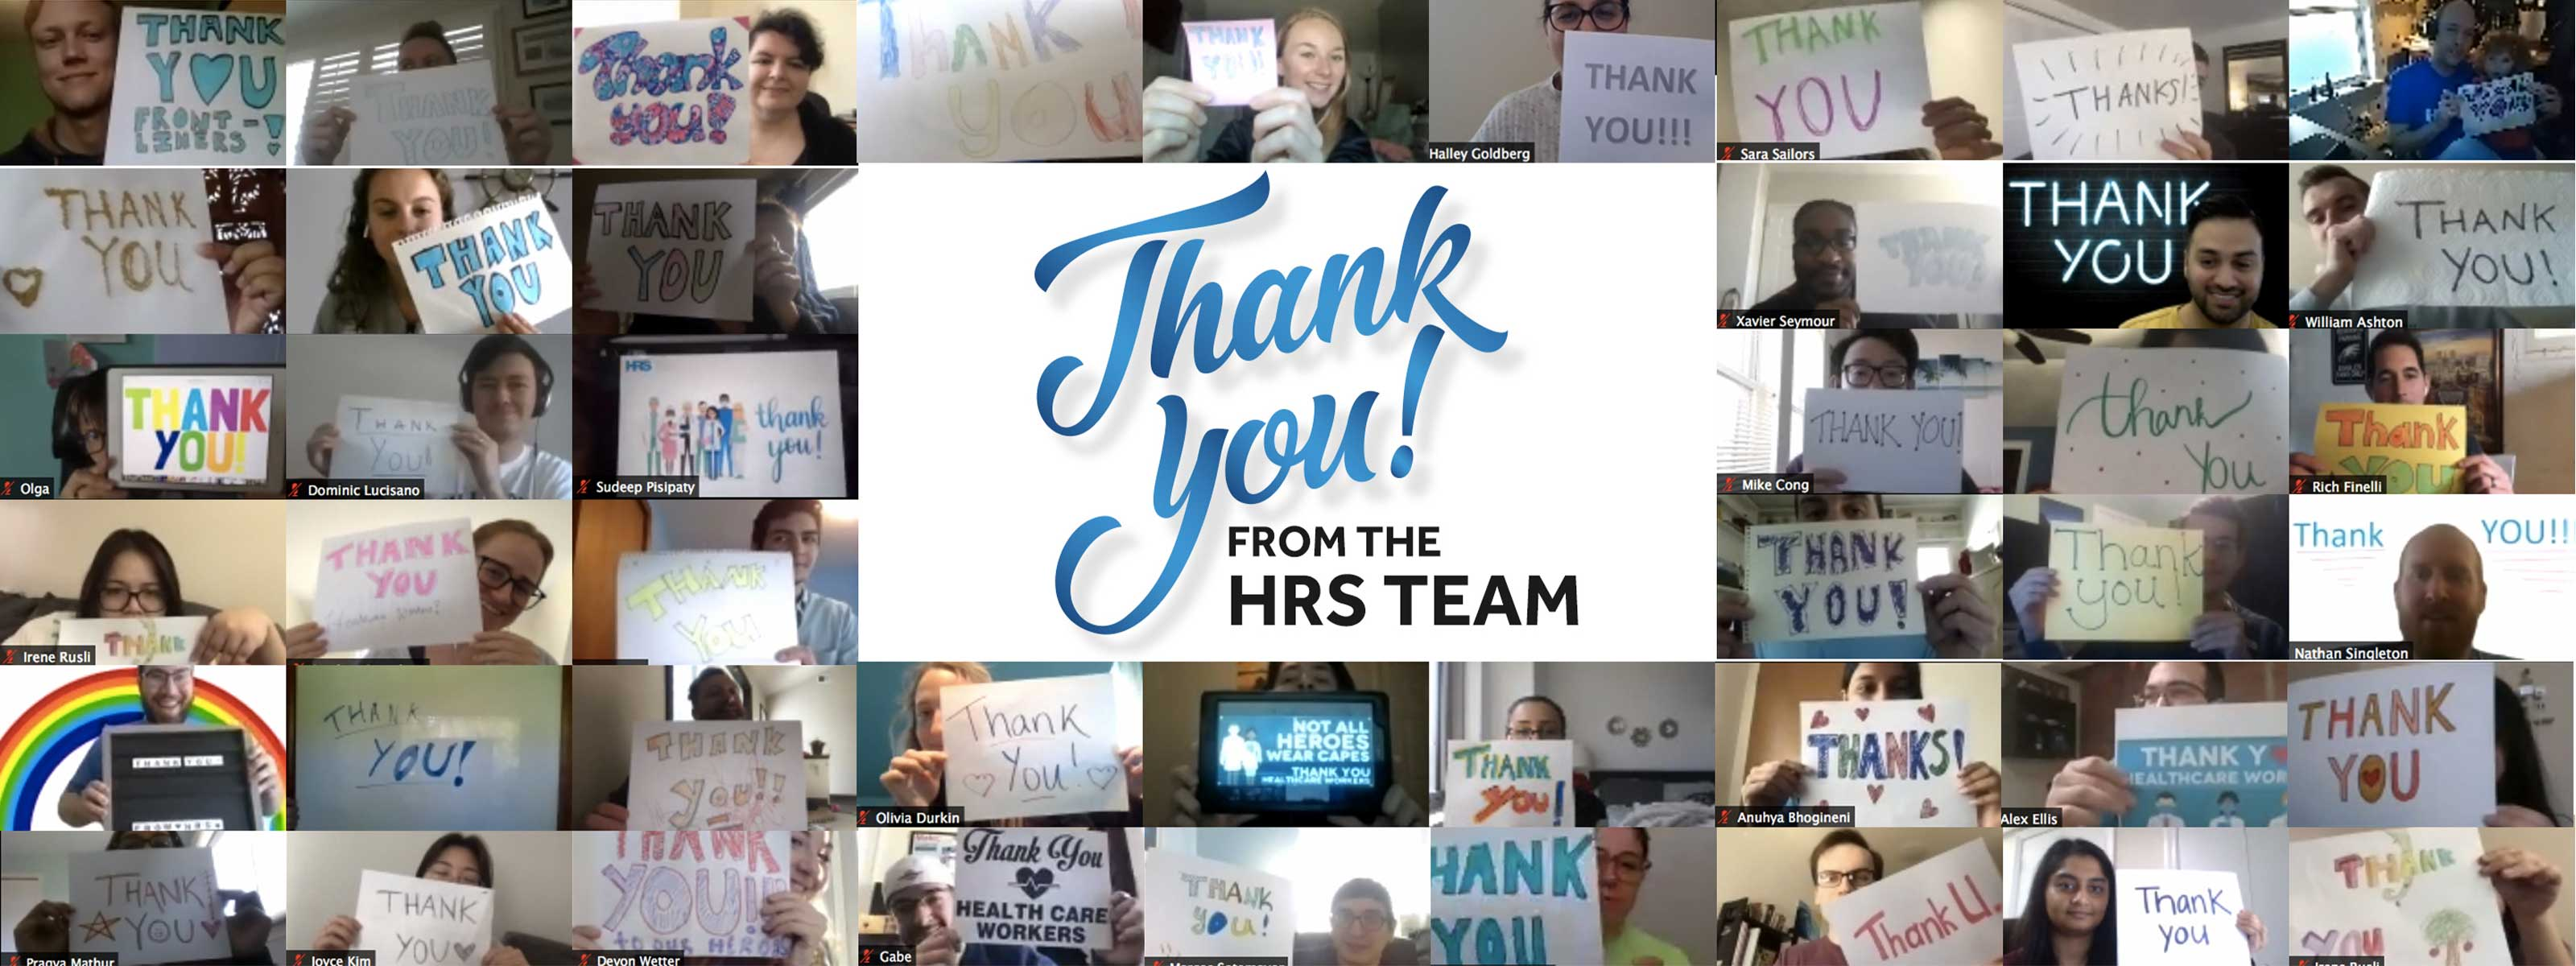 HRS Team Thanks Healthcare Providers